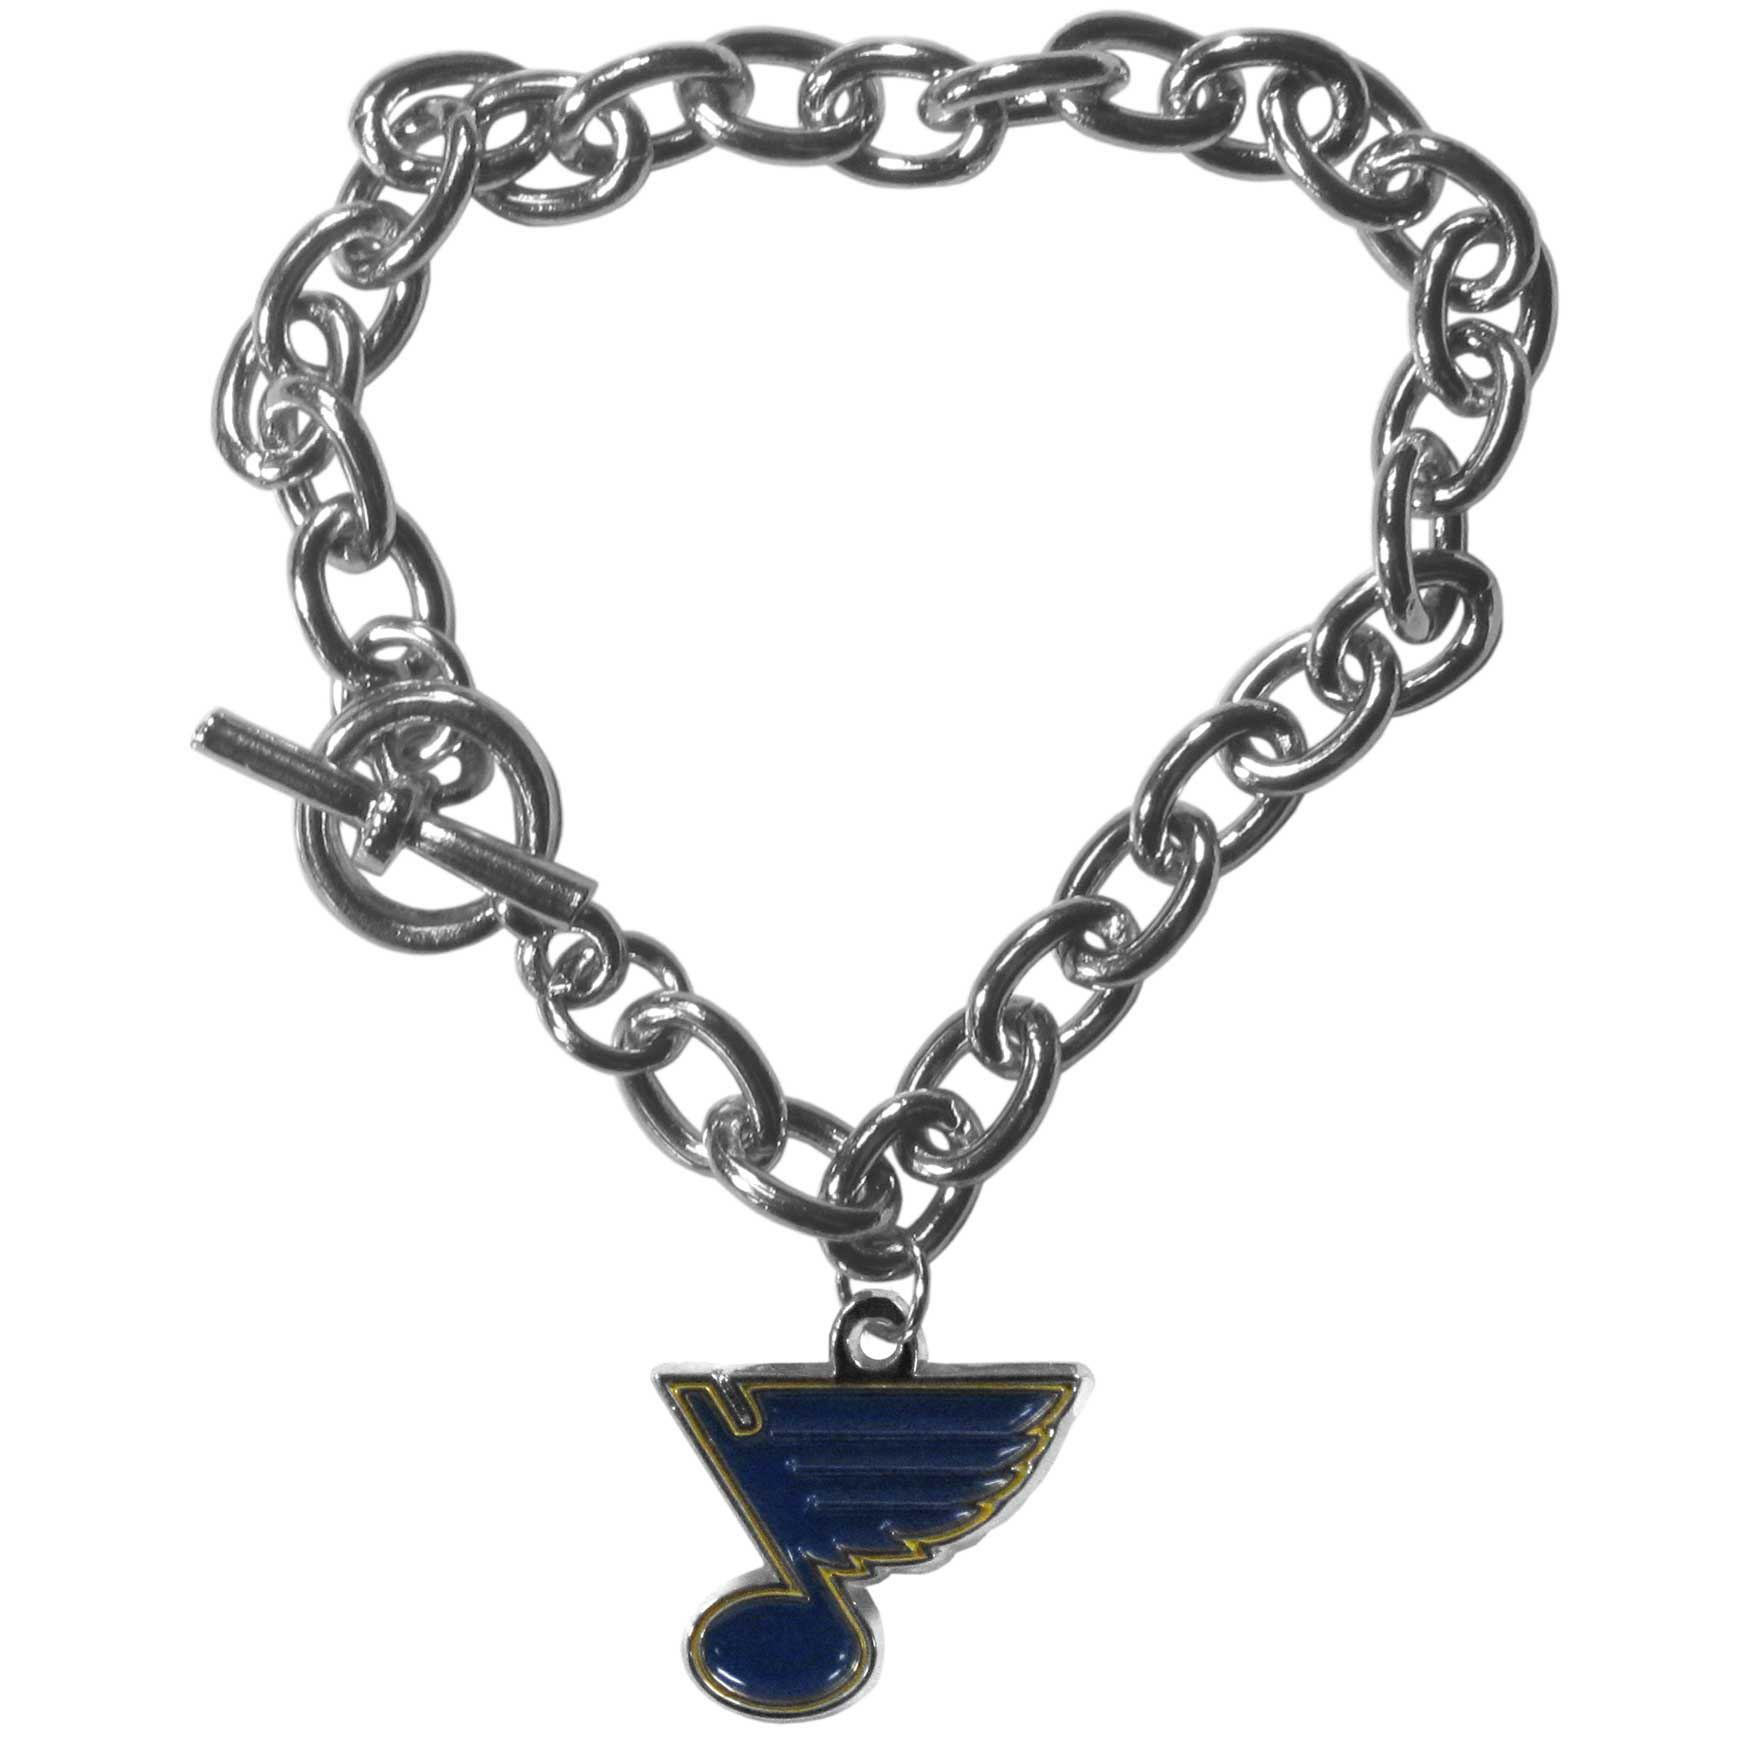 St. Louis Blues® Charm Chain Bracelet - Our classic single charm bracelet is a great way to show off your team pride! The 7.5 inch large link chain features a high polish St. Louis Blues® charm and features a toggle clasp which makes it super easy to take on and off.